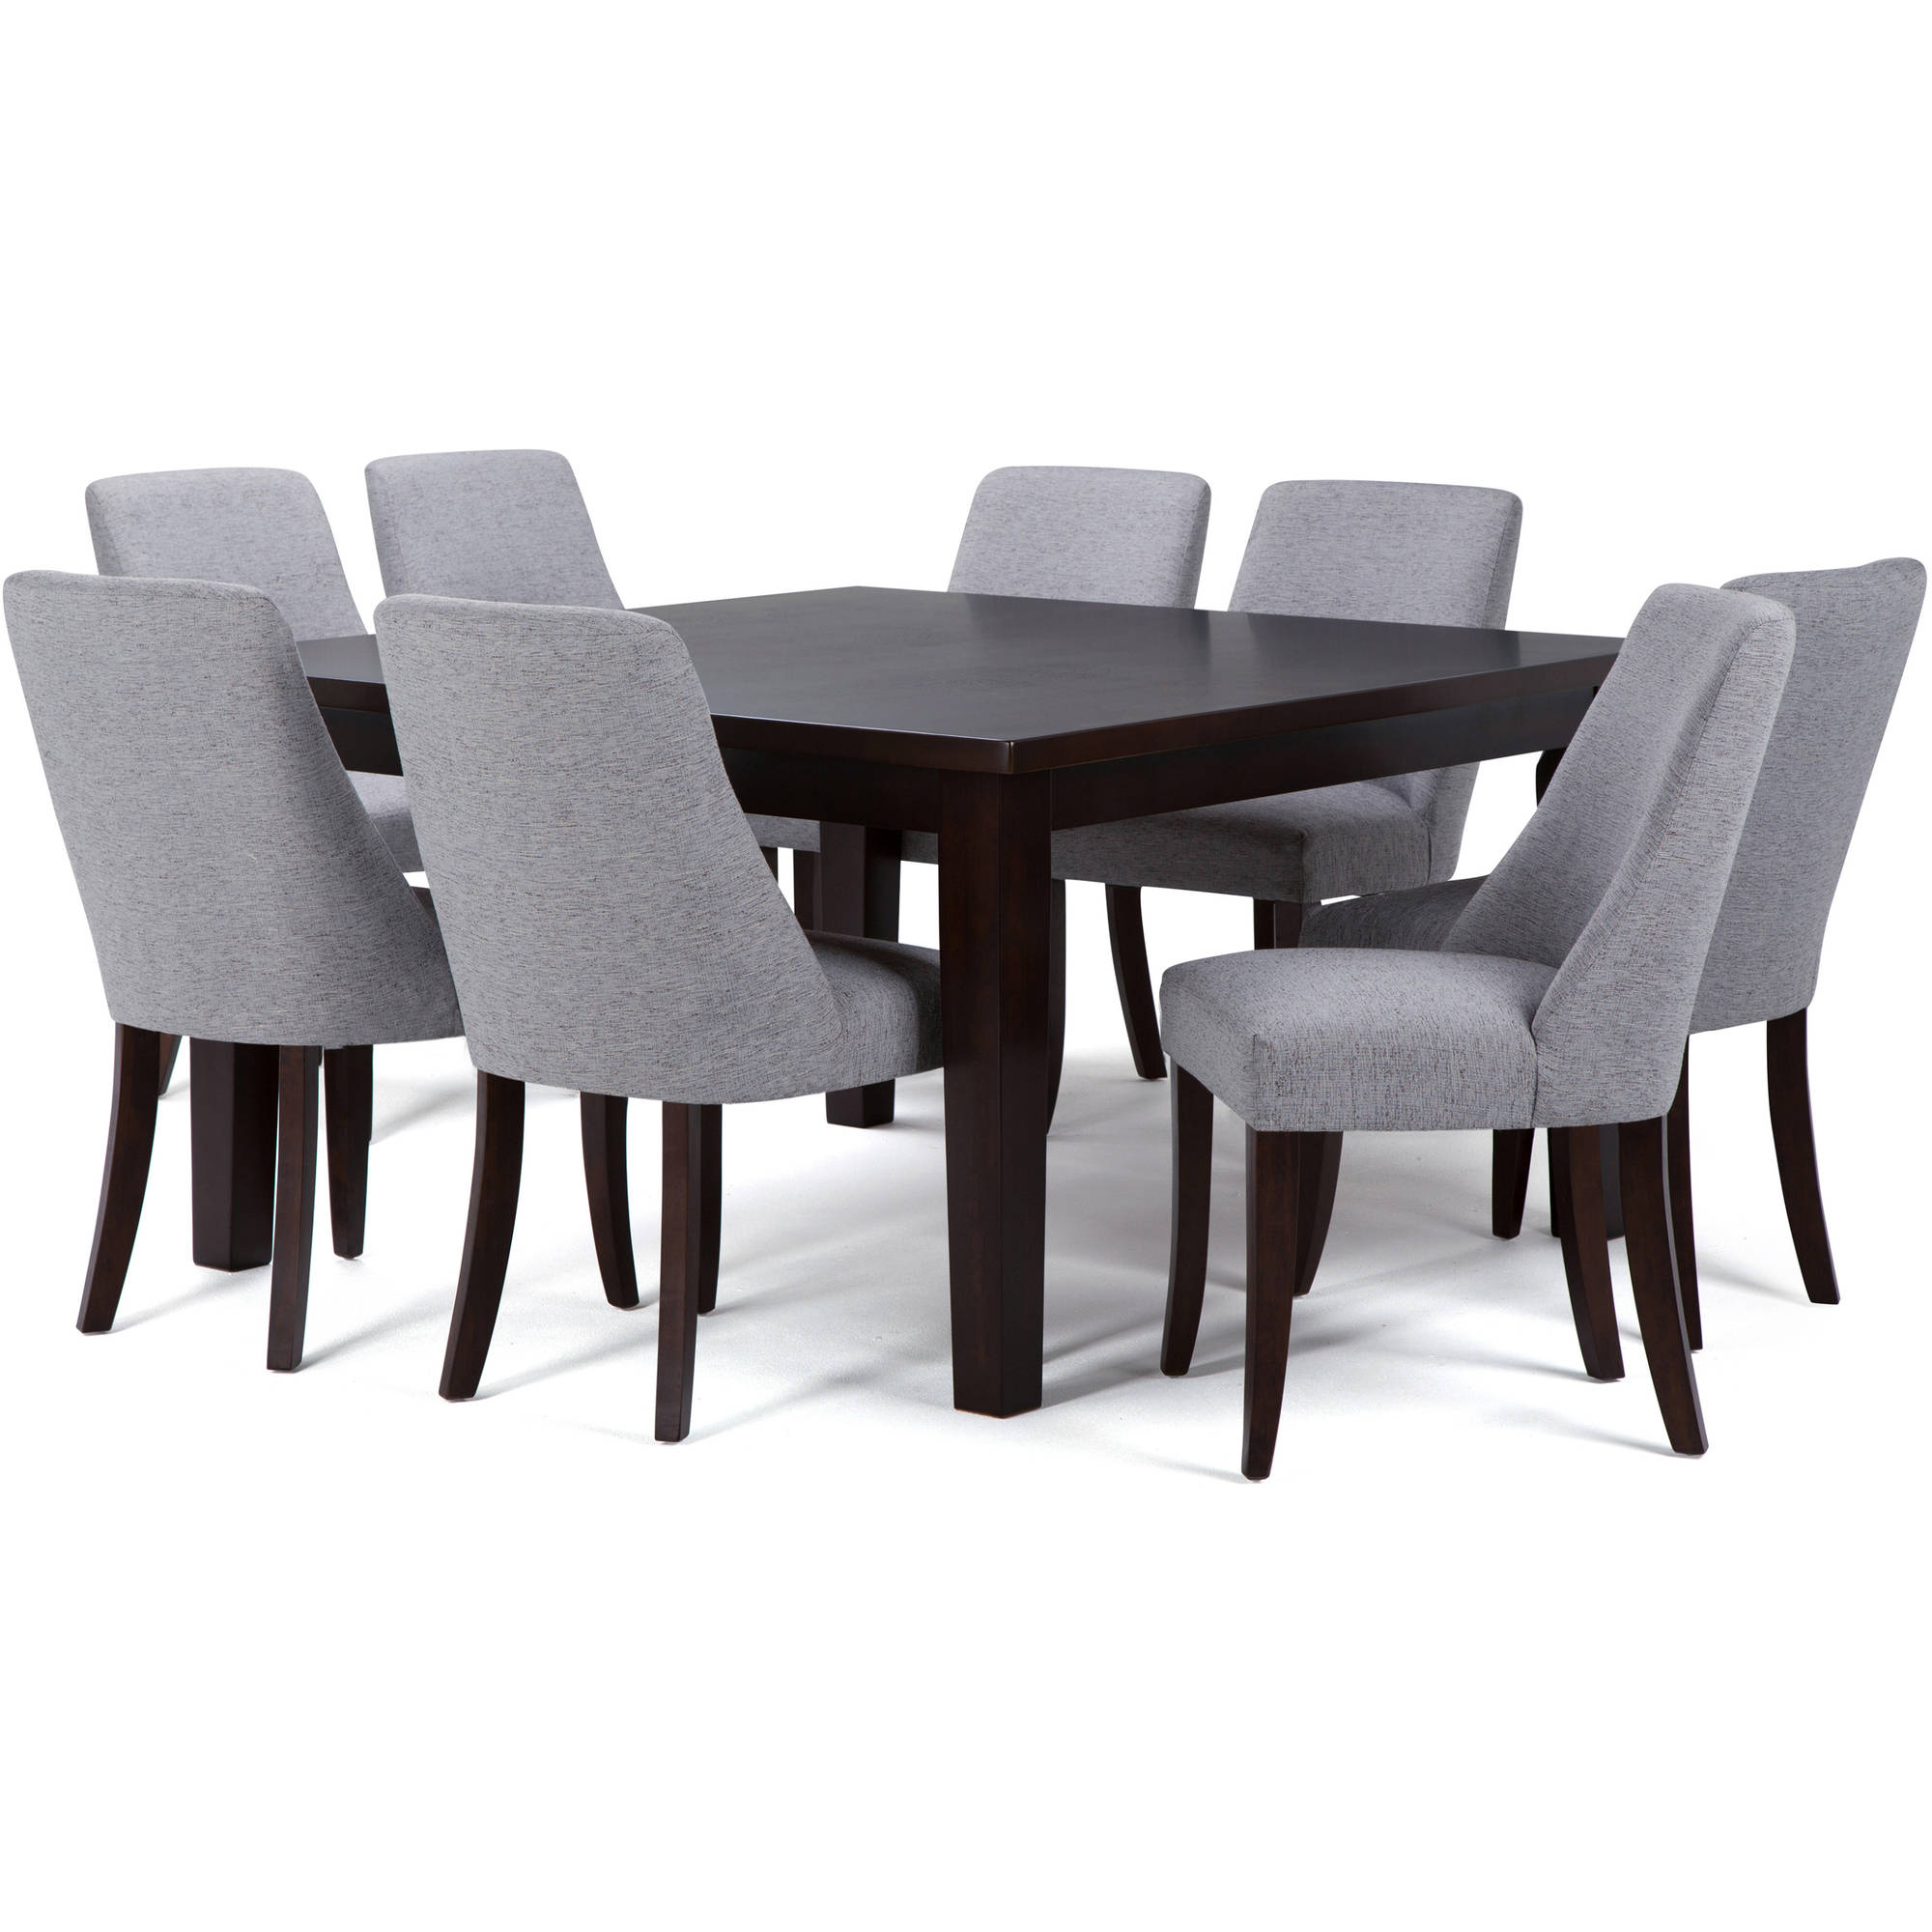 Terrific Black And White Dining Room Furniture Gallery Best